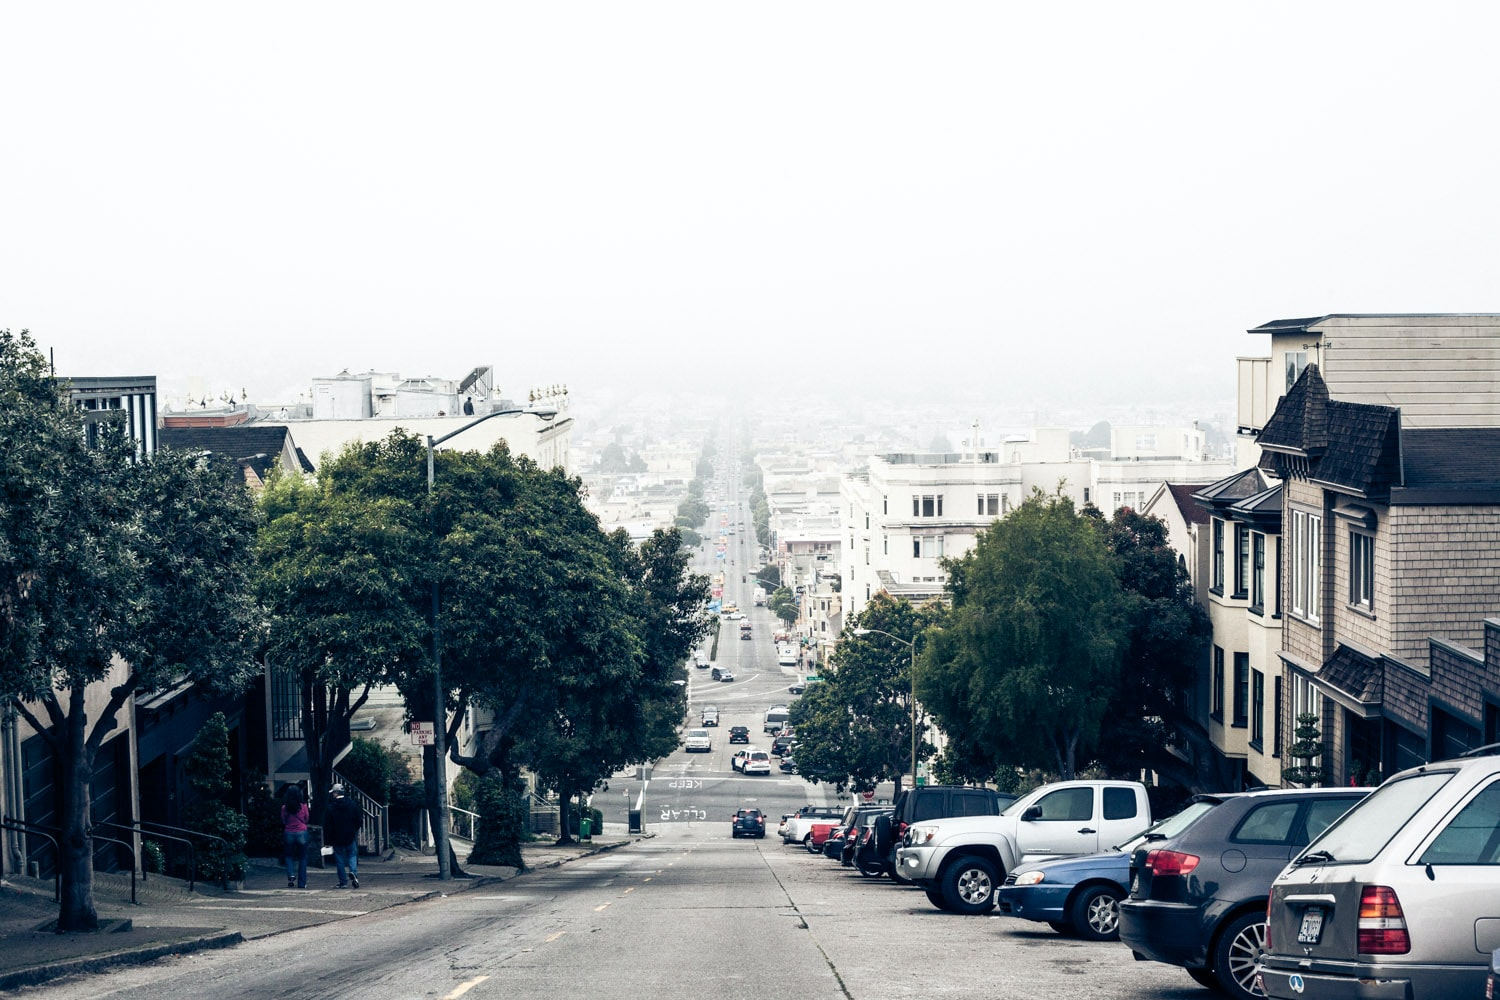 Street at the top of a hill lined with houses and cars with fog in the distance